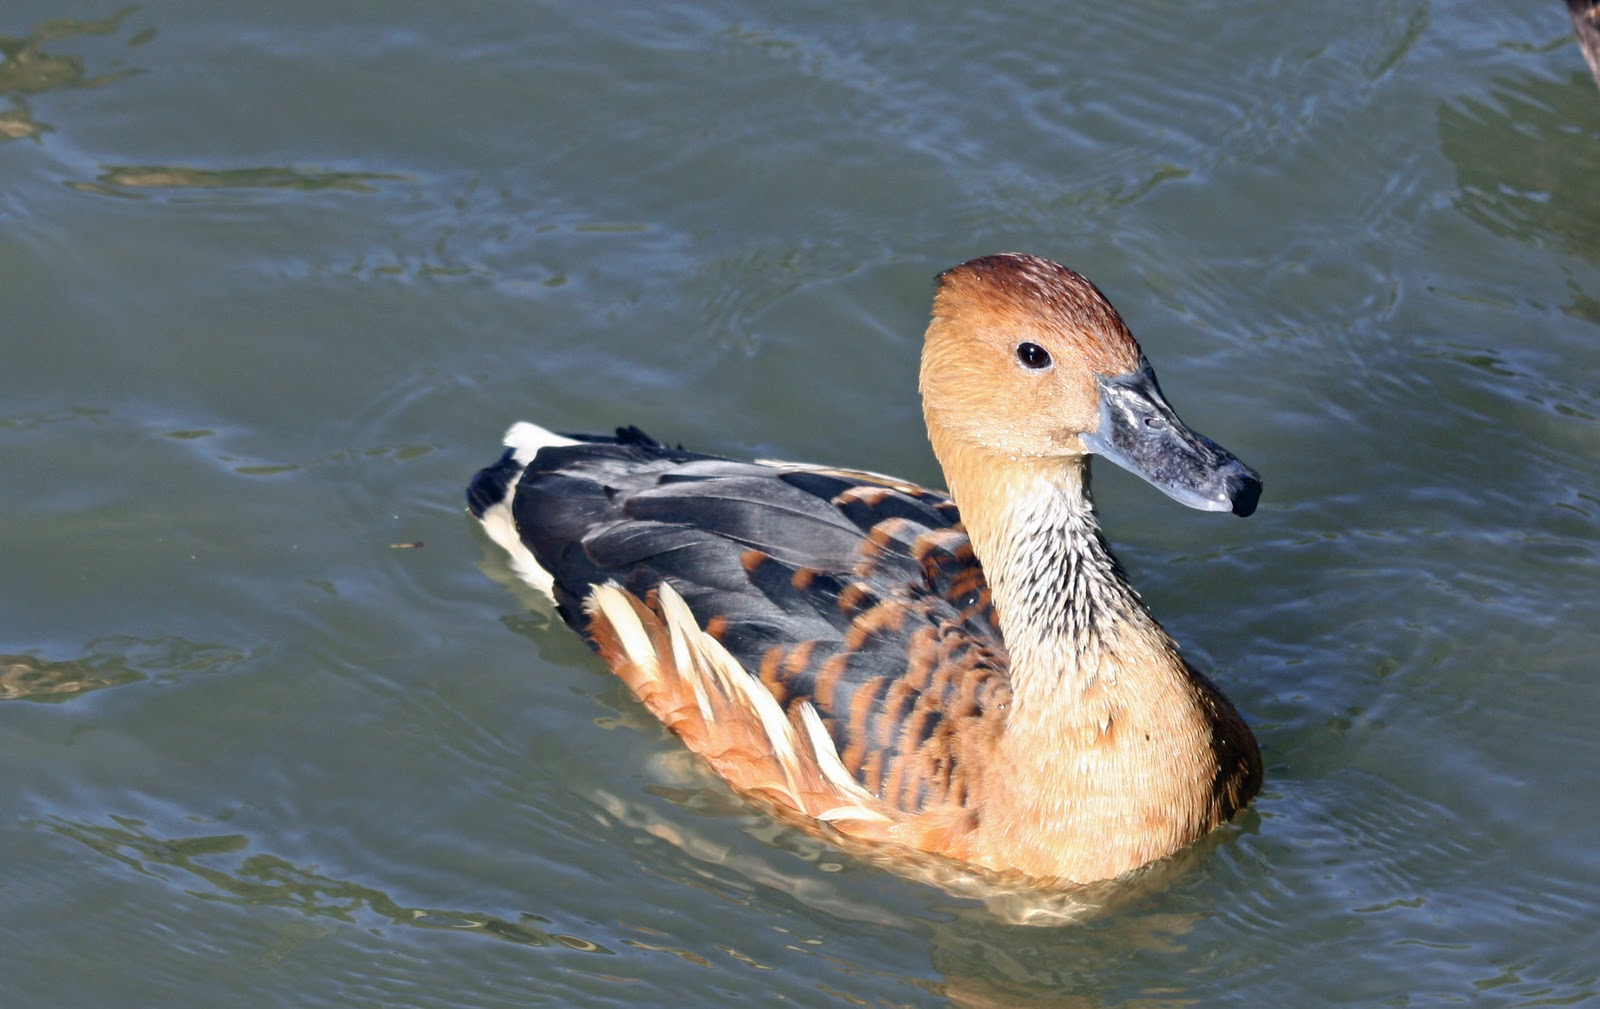 Female Fulvous Whistling Duck